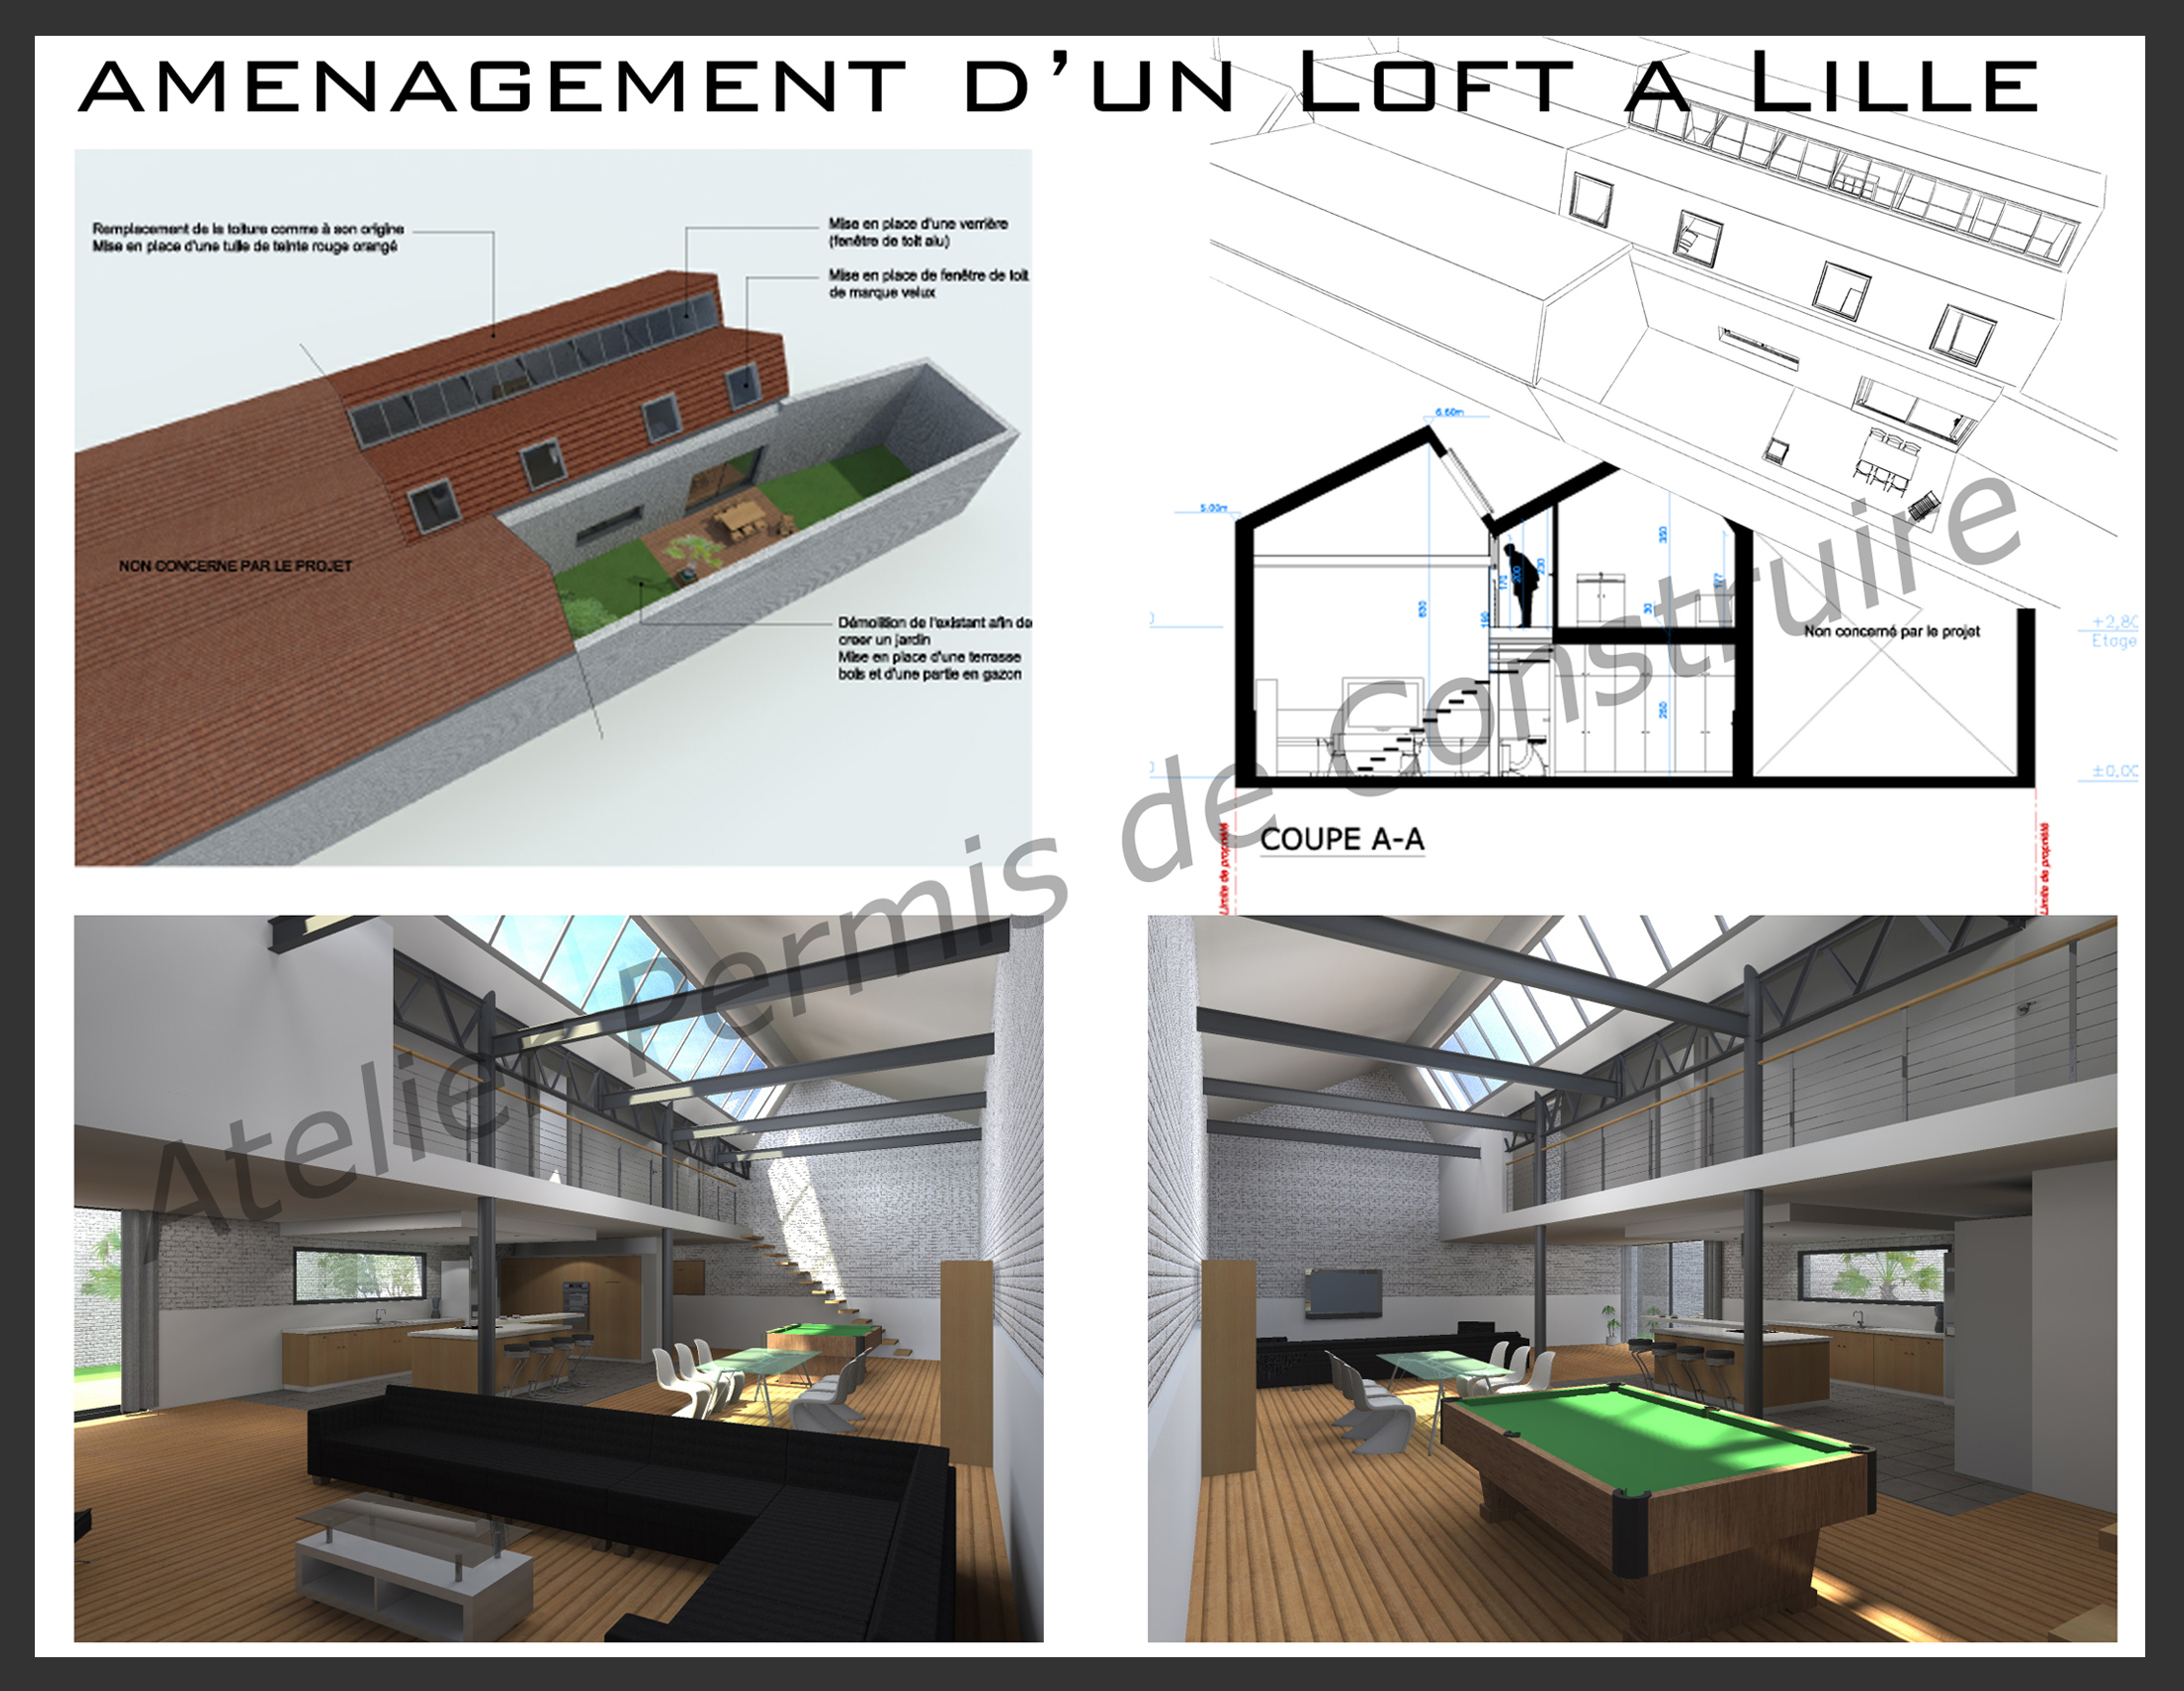 Am nagement d 39 un loft lille for Amenagement combles permis de construire